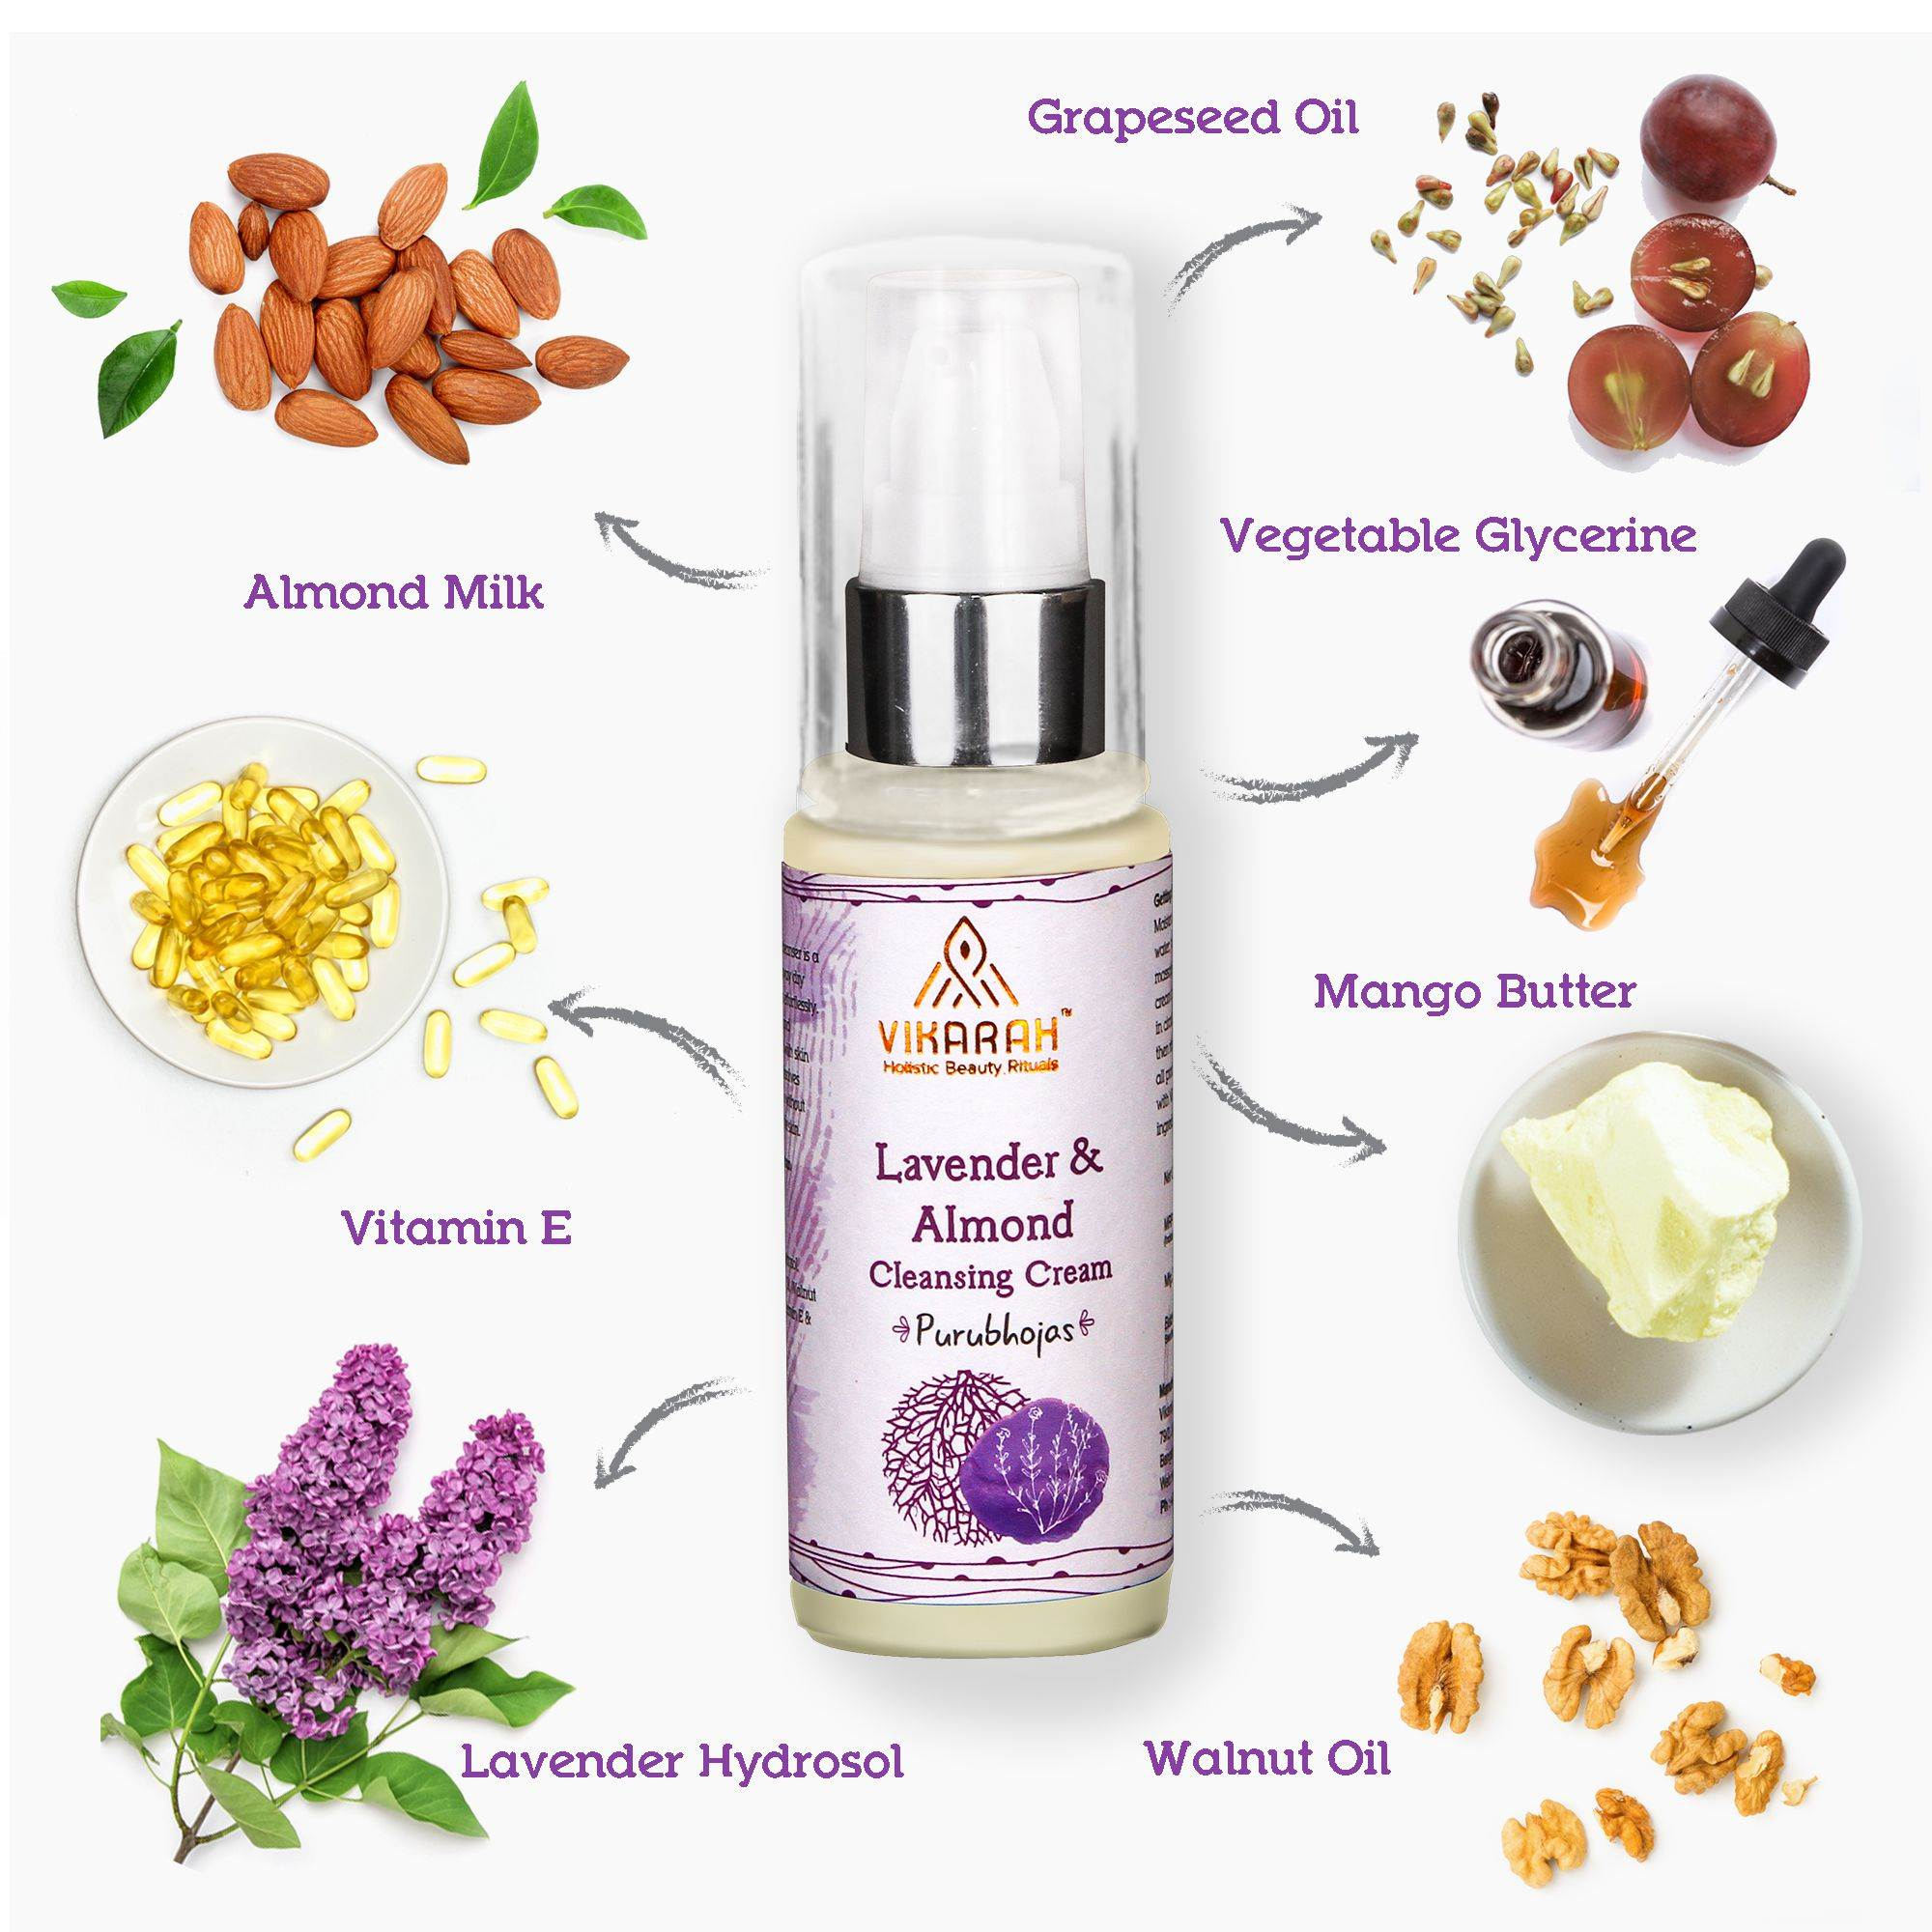 Lavender And Almond Cleansing Cream